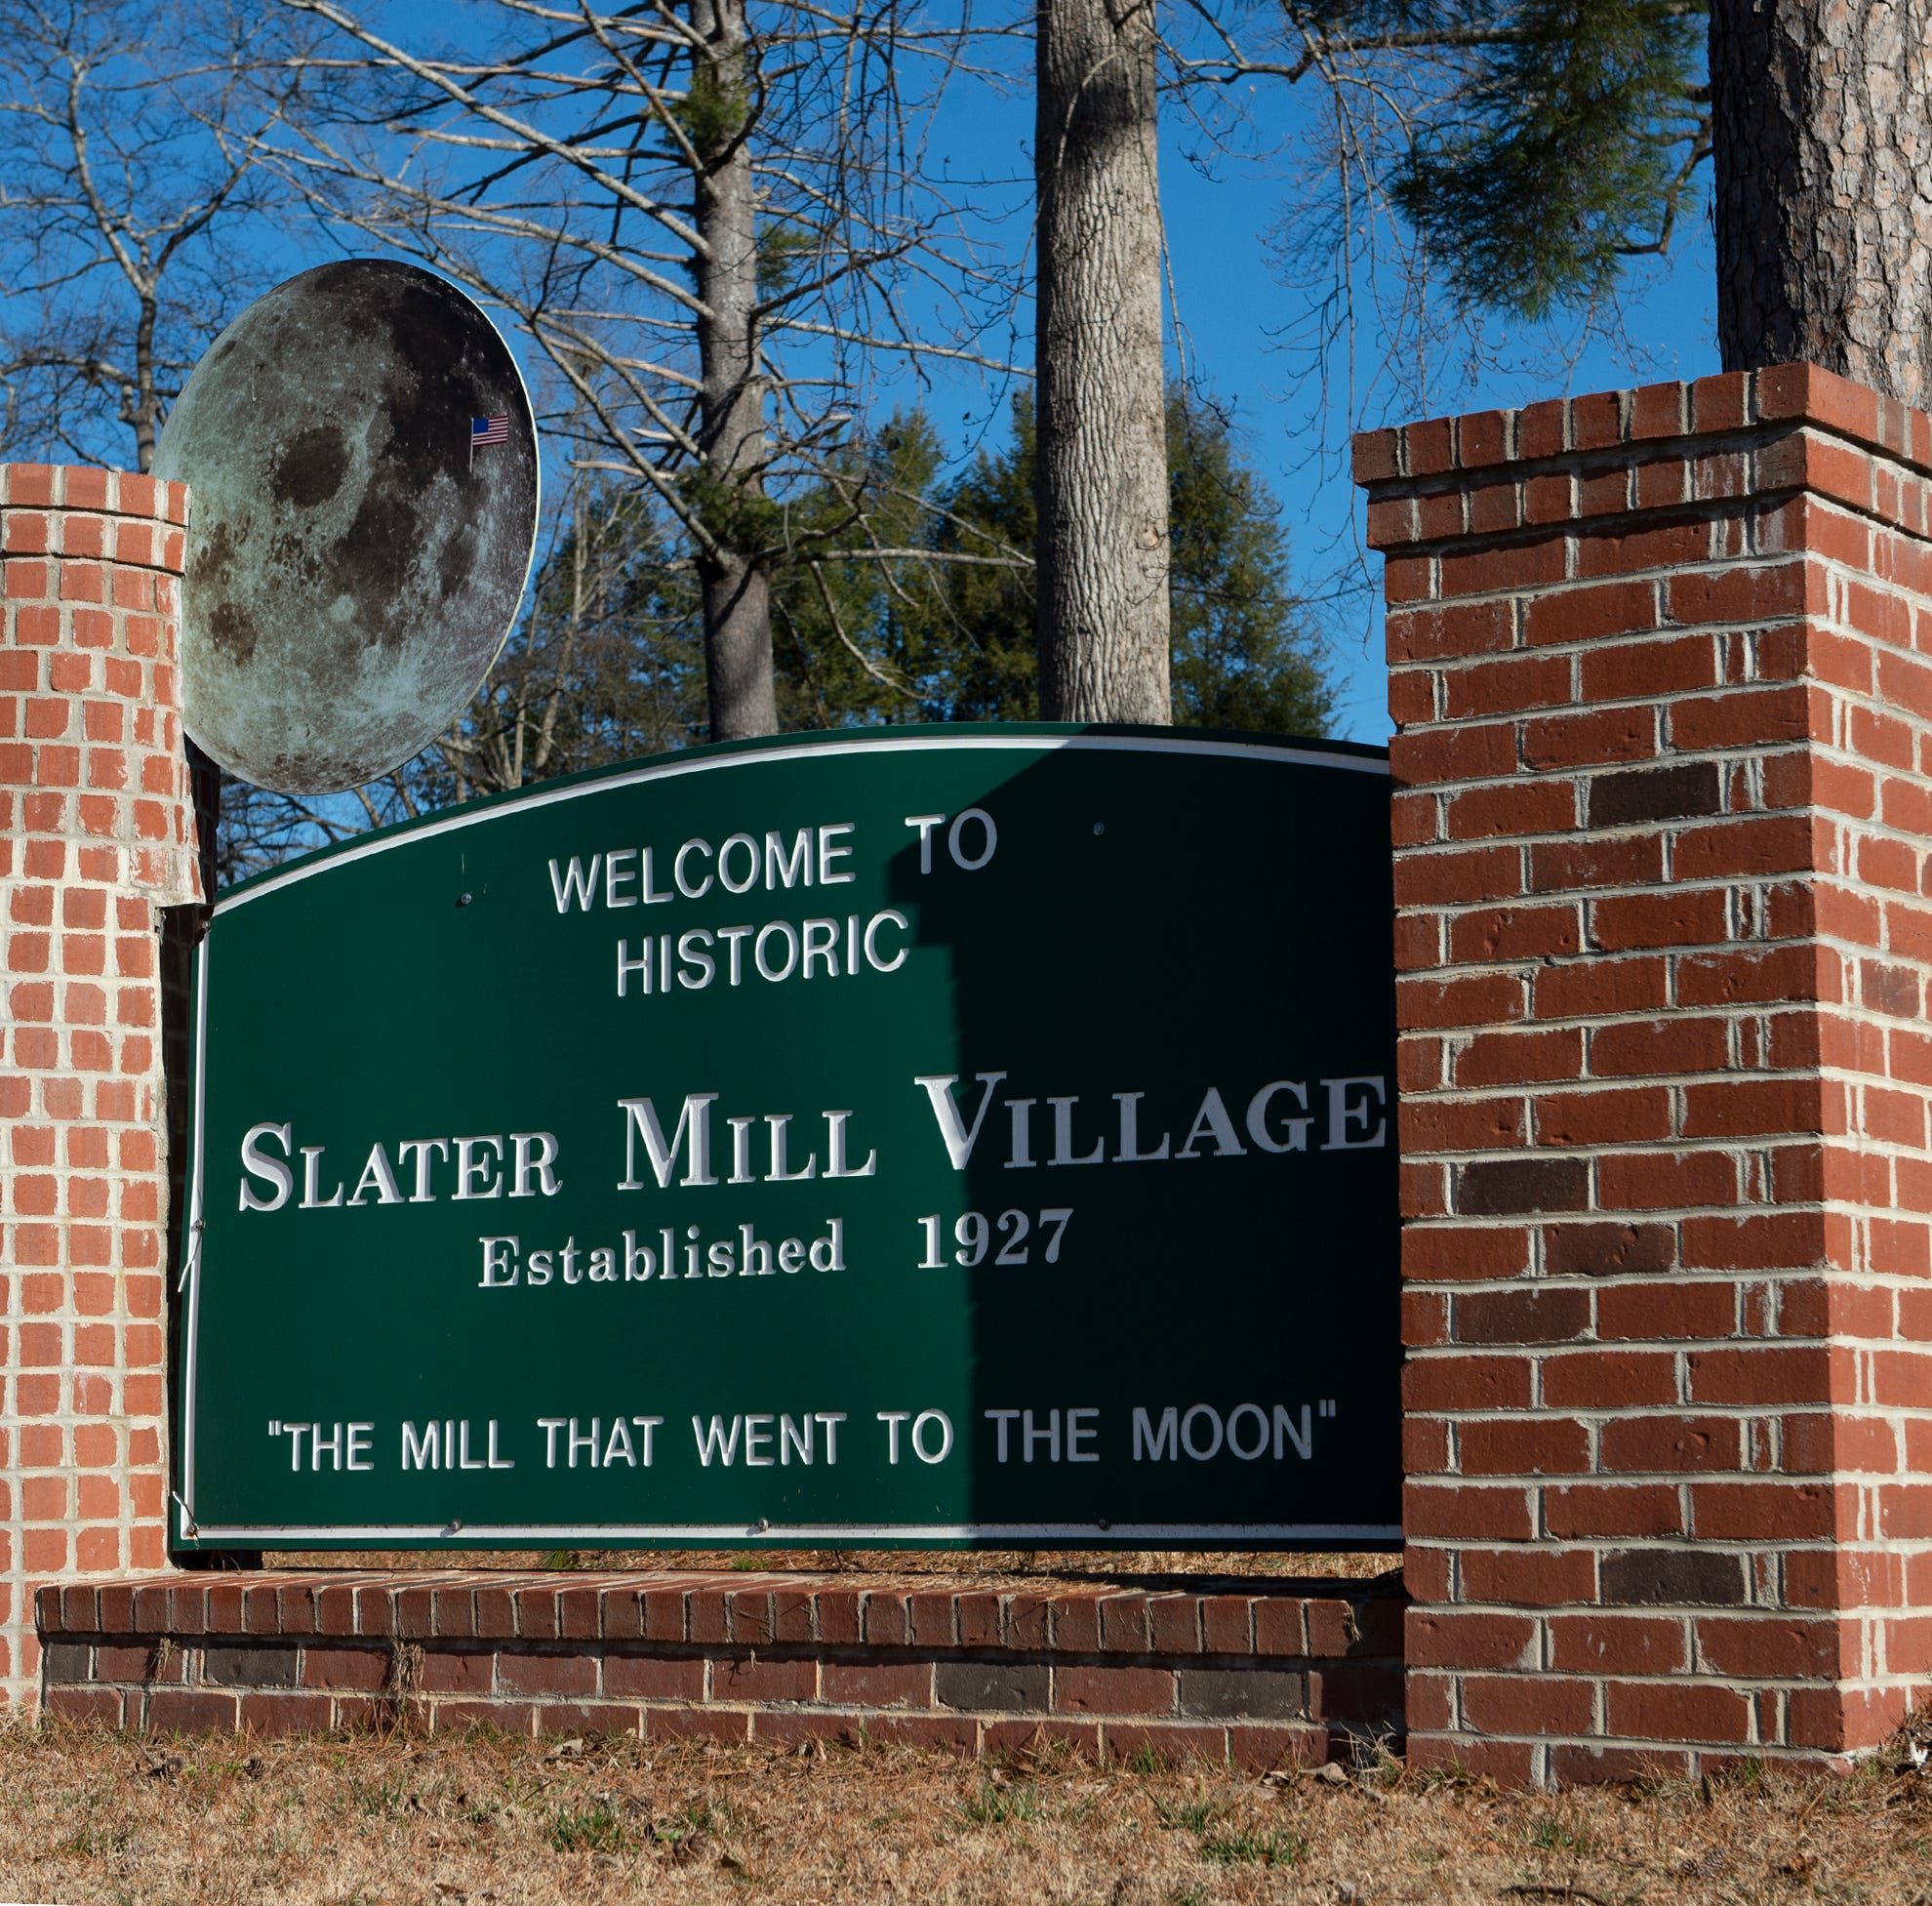 New affordable homes coming to Greenville Co. mill village for first time in over a decade